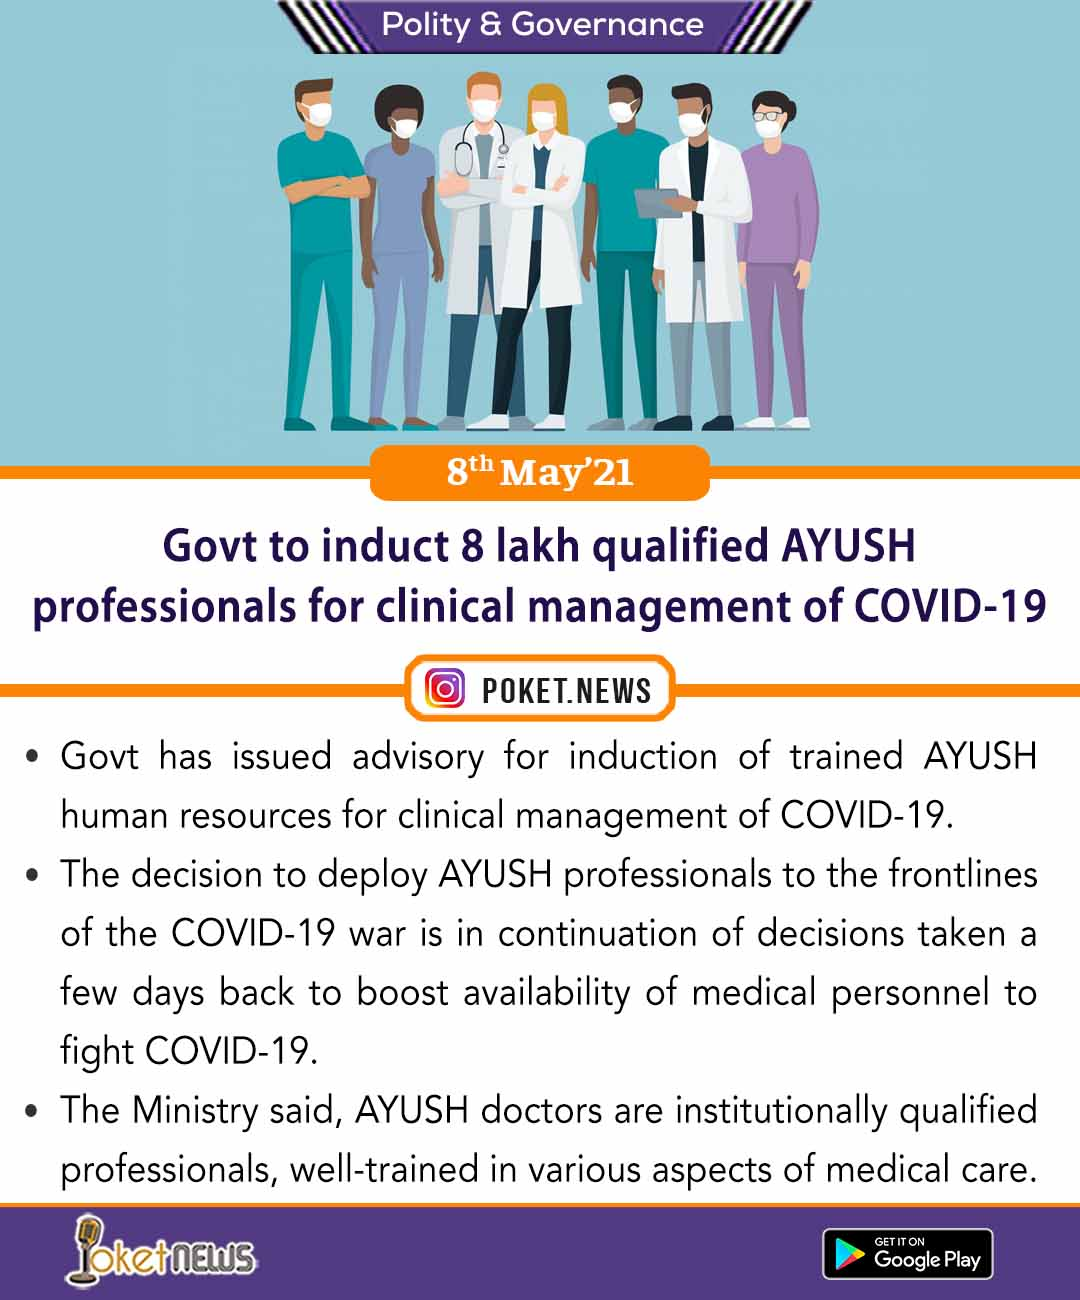 Govt to induct 8 lakh qualified AYUSH professionals for clinical management of COVID-19